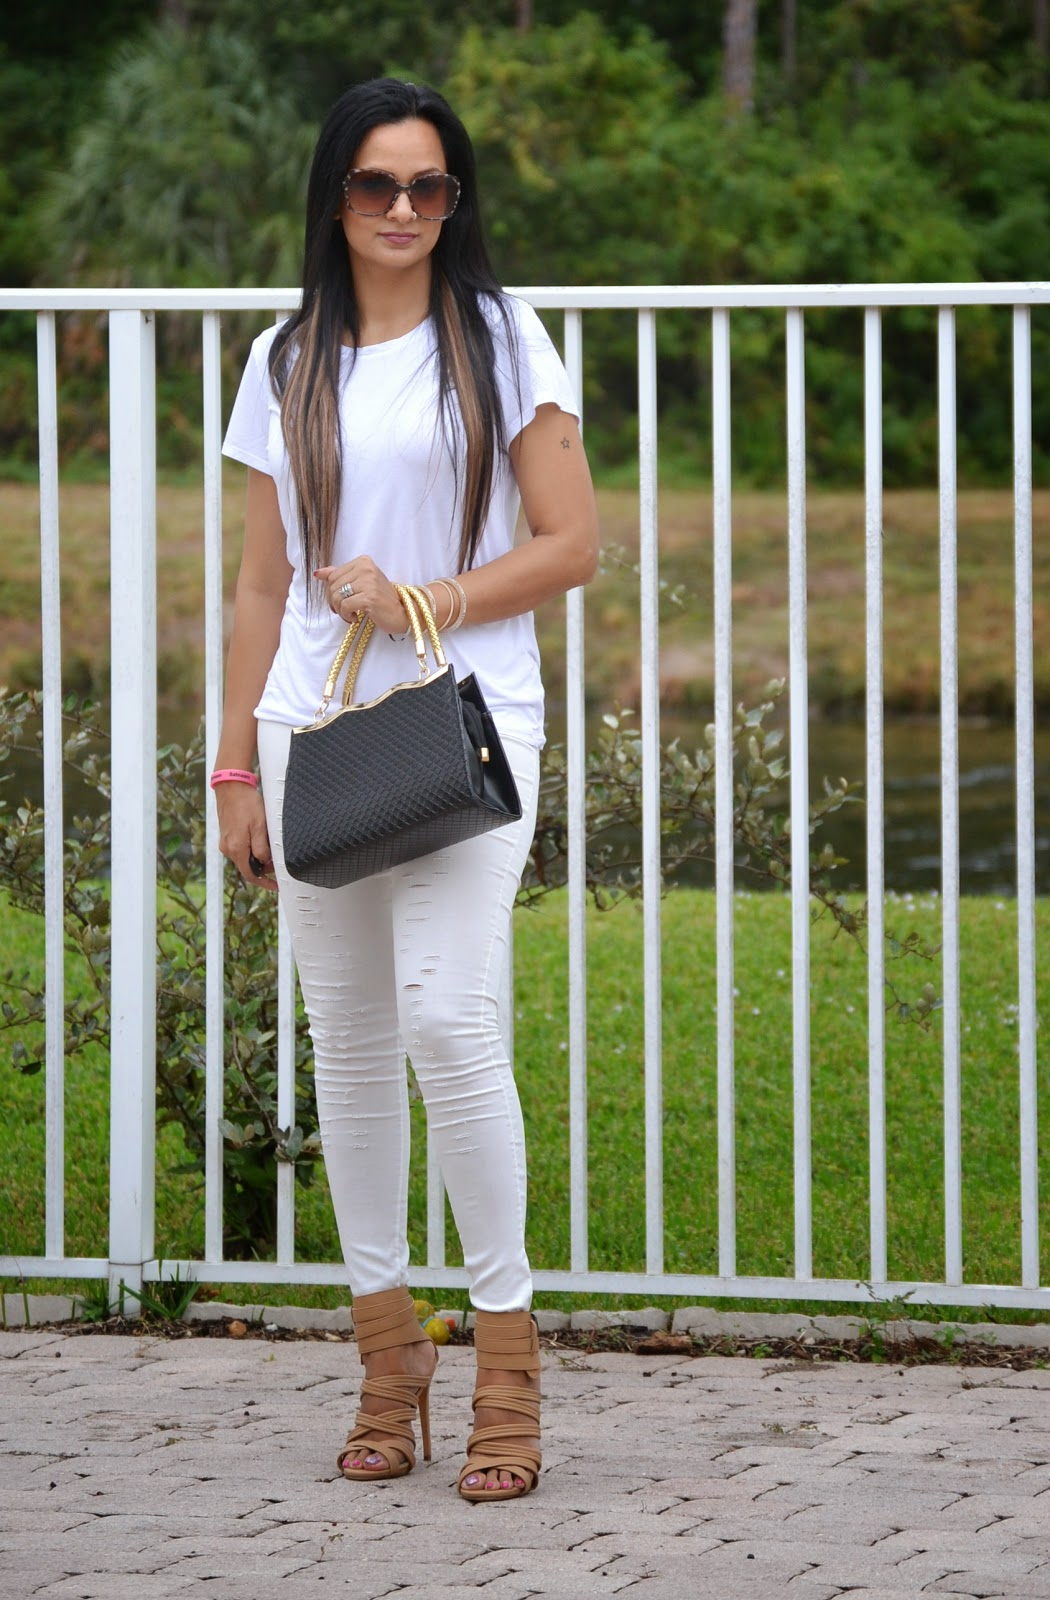 Kim Kardashian White Look For Less ripped pants gladiator sandals women designer shoes www.sandysandhu.co